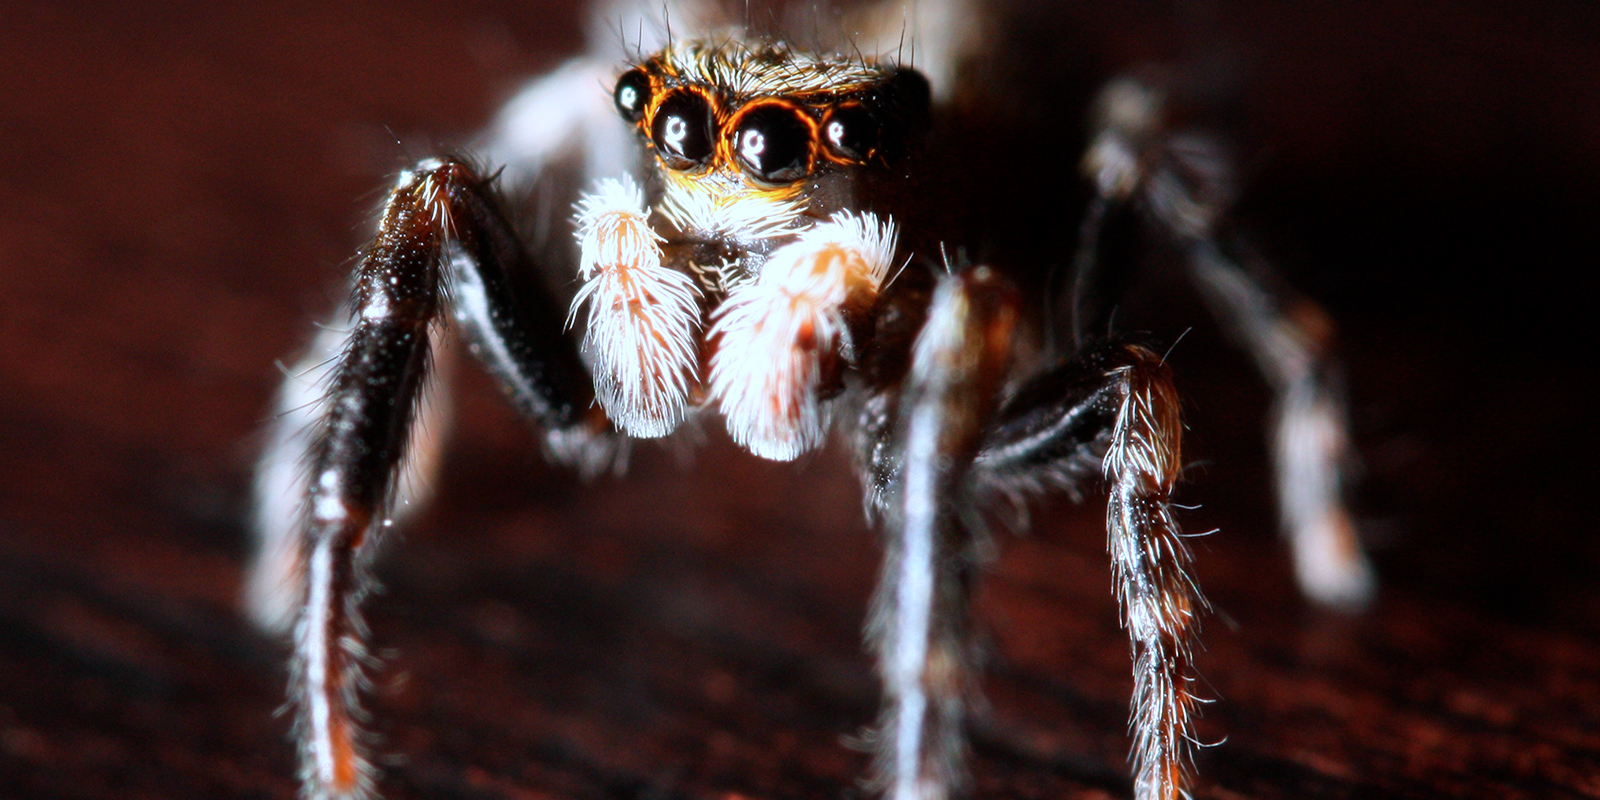 A close up view of the front of a live male spider